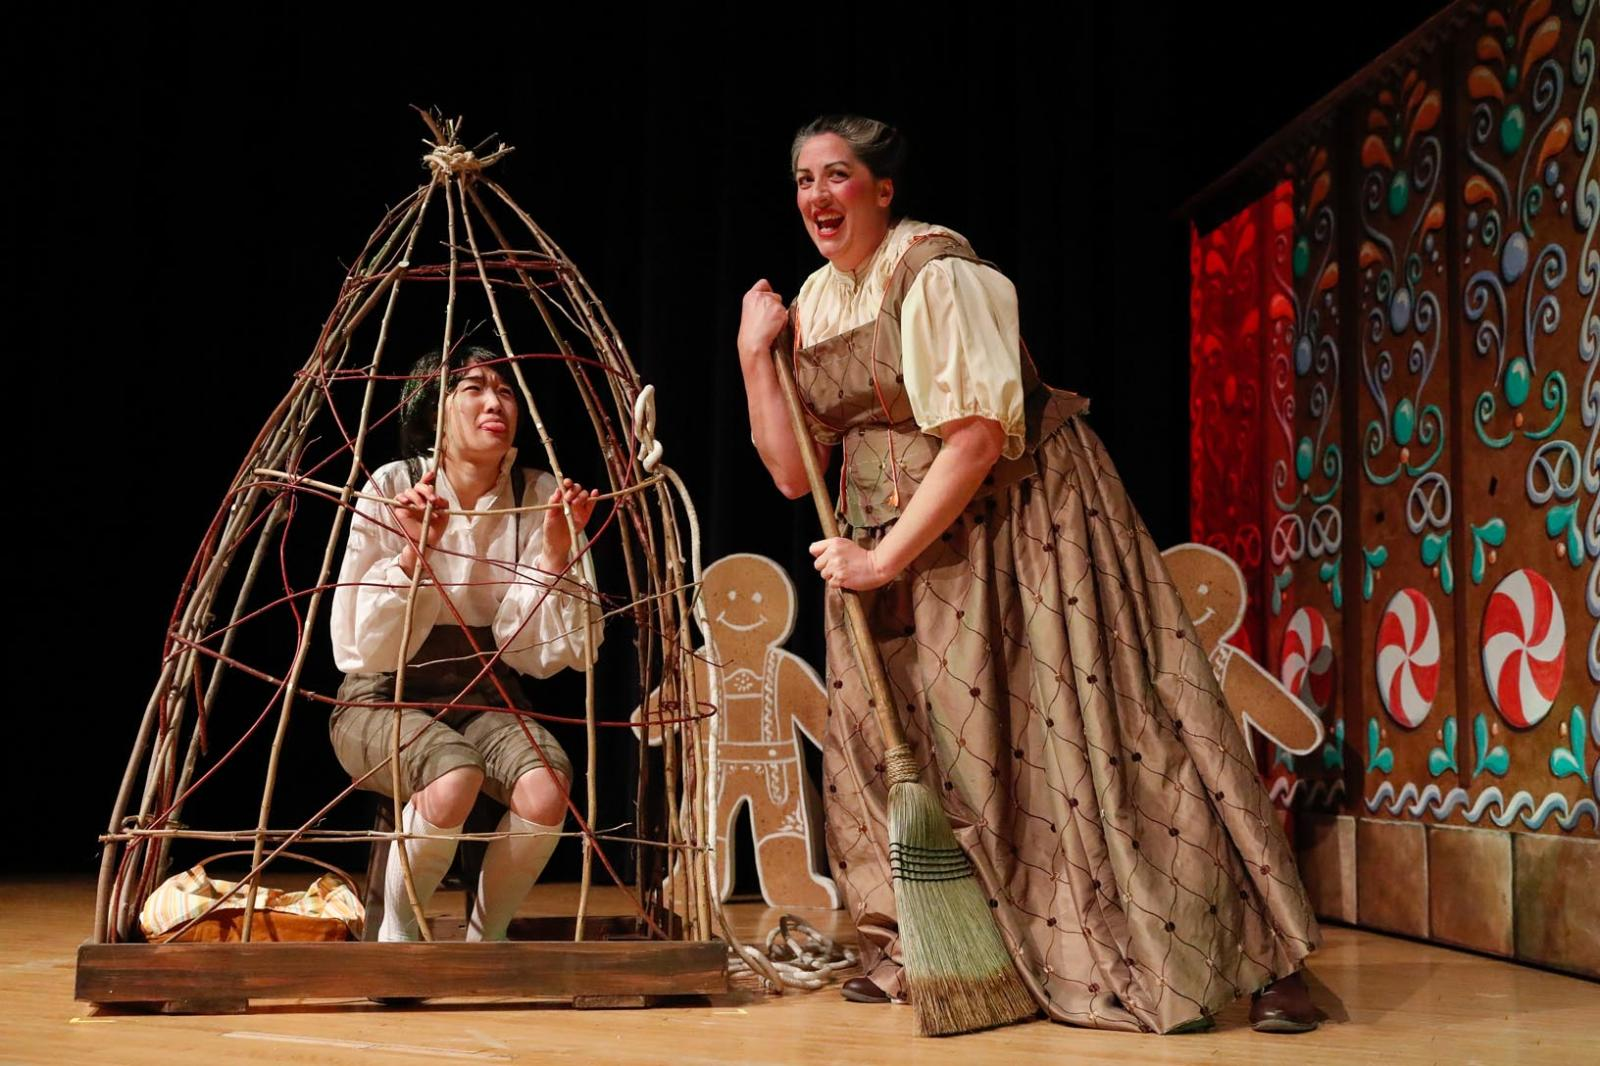 """Scene from the opera, """"Hansel and Gretel"""""""